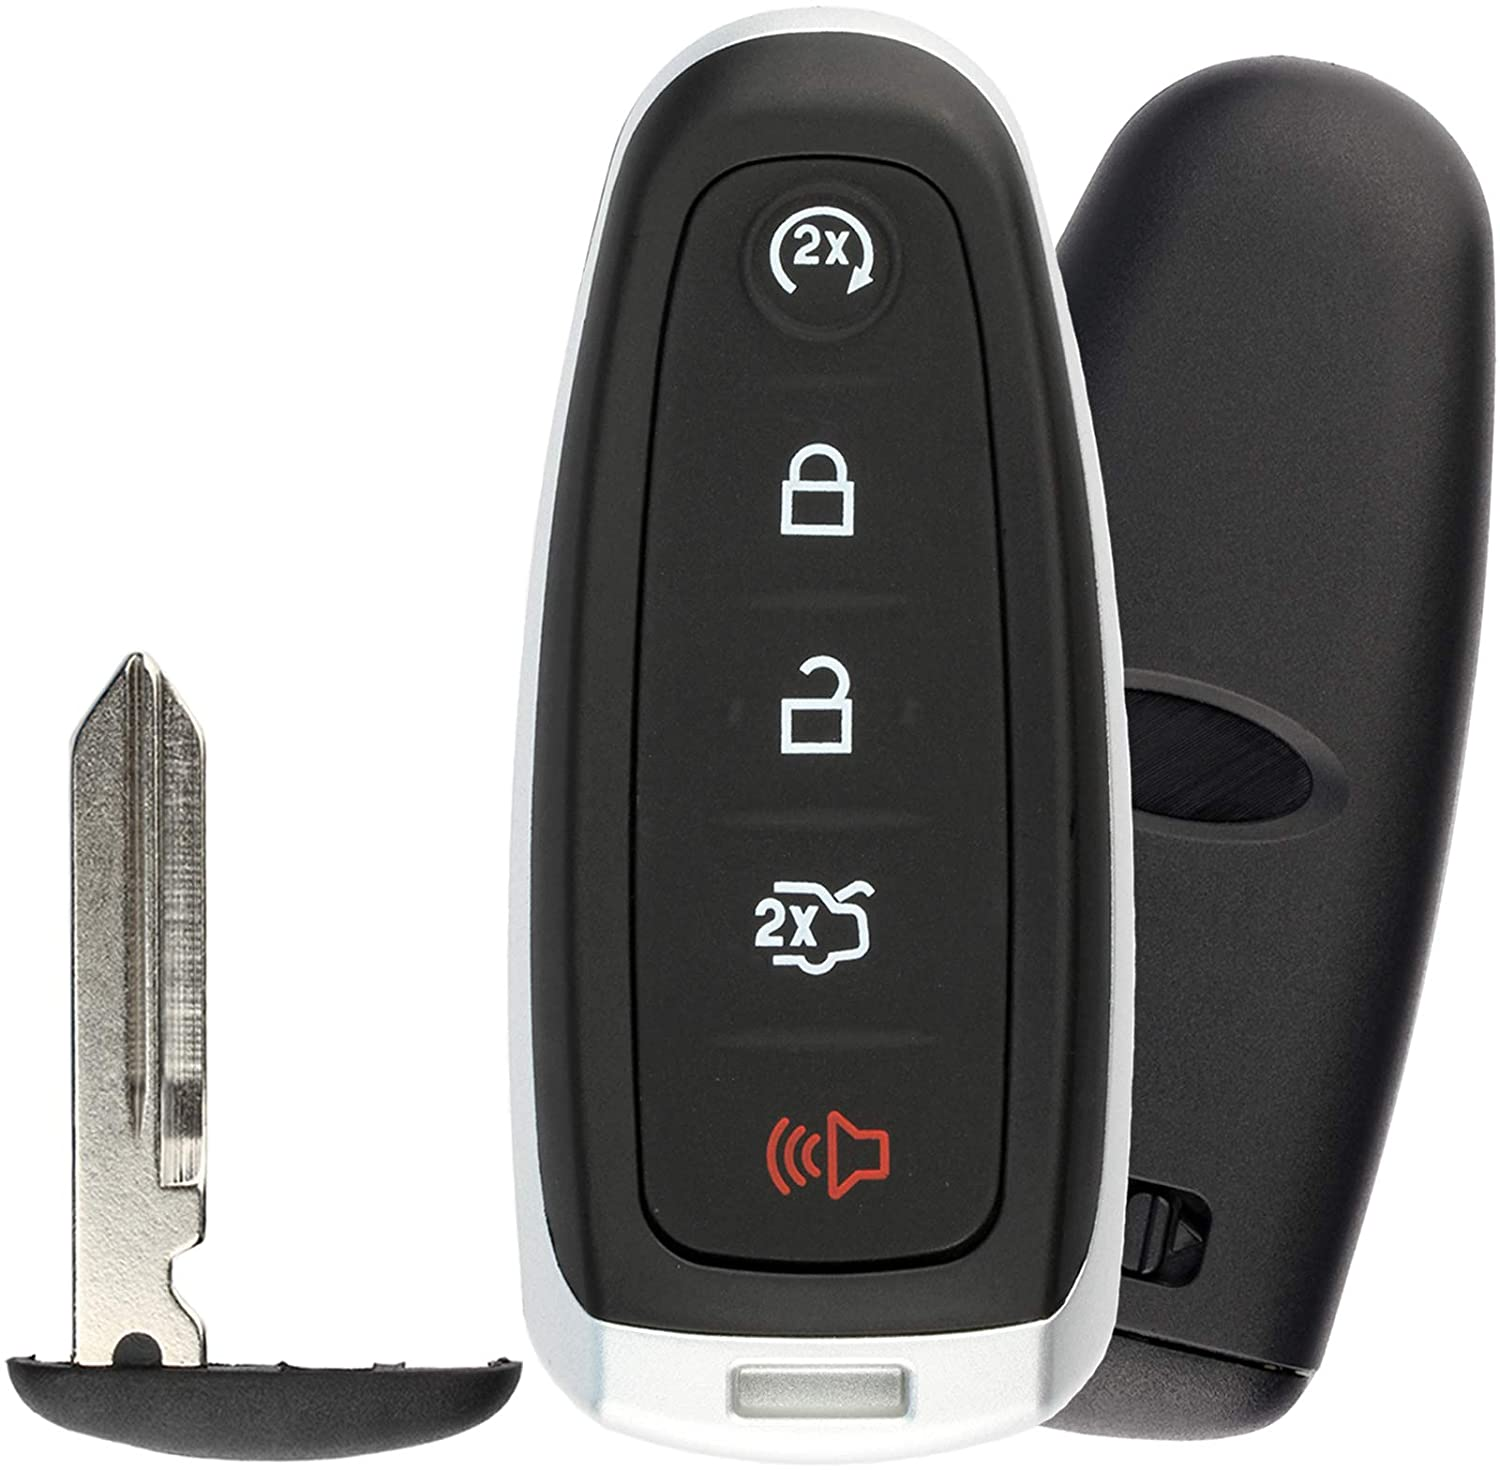 Amazon.com: KeylessOption - Llavero inteligente para Ford ...